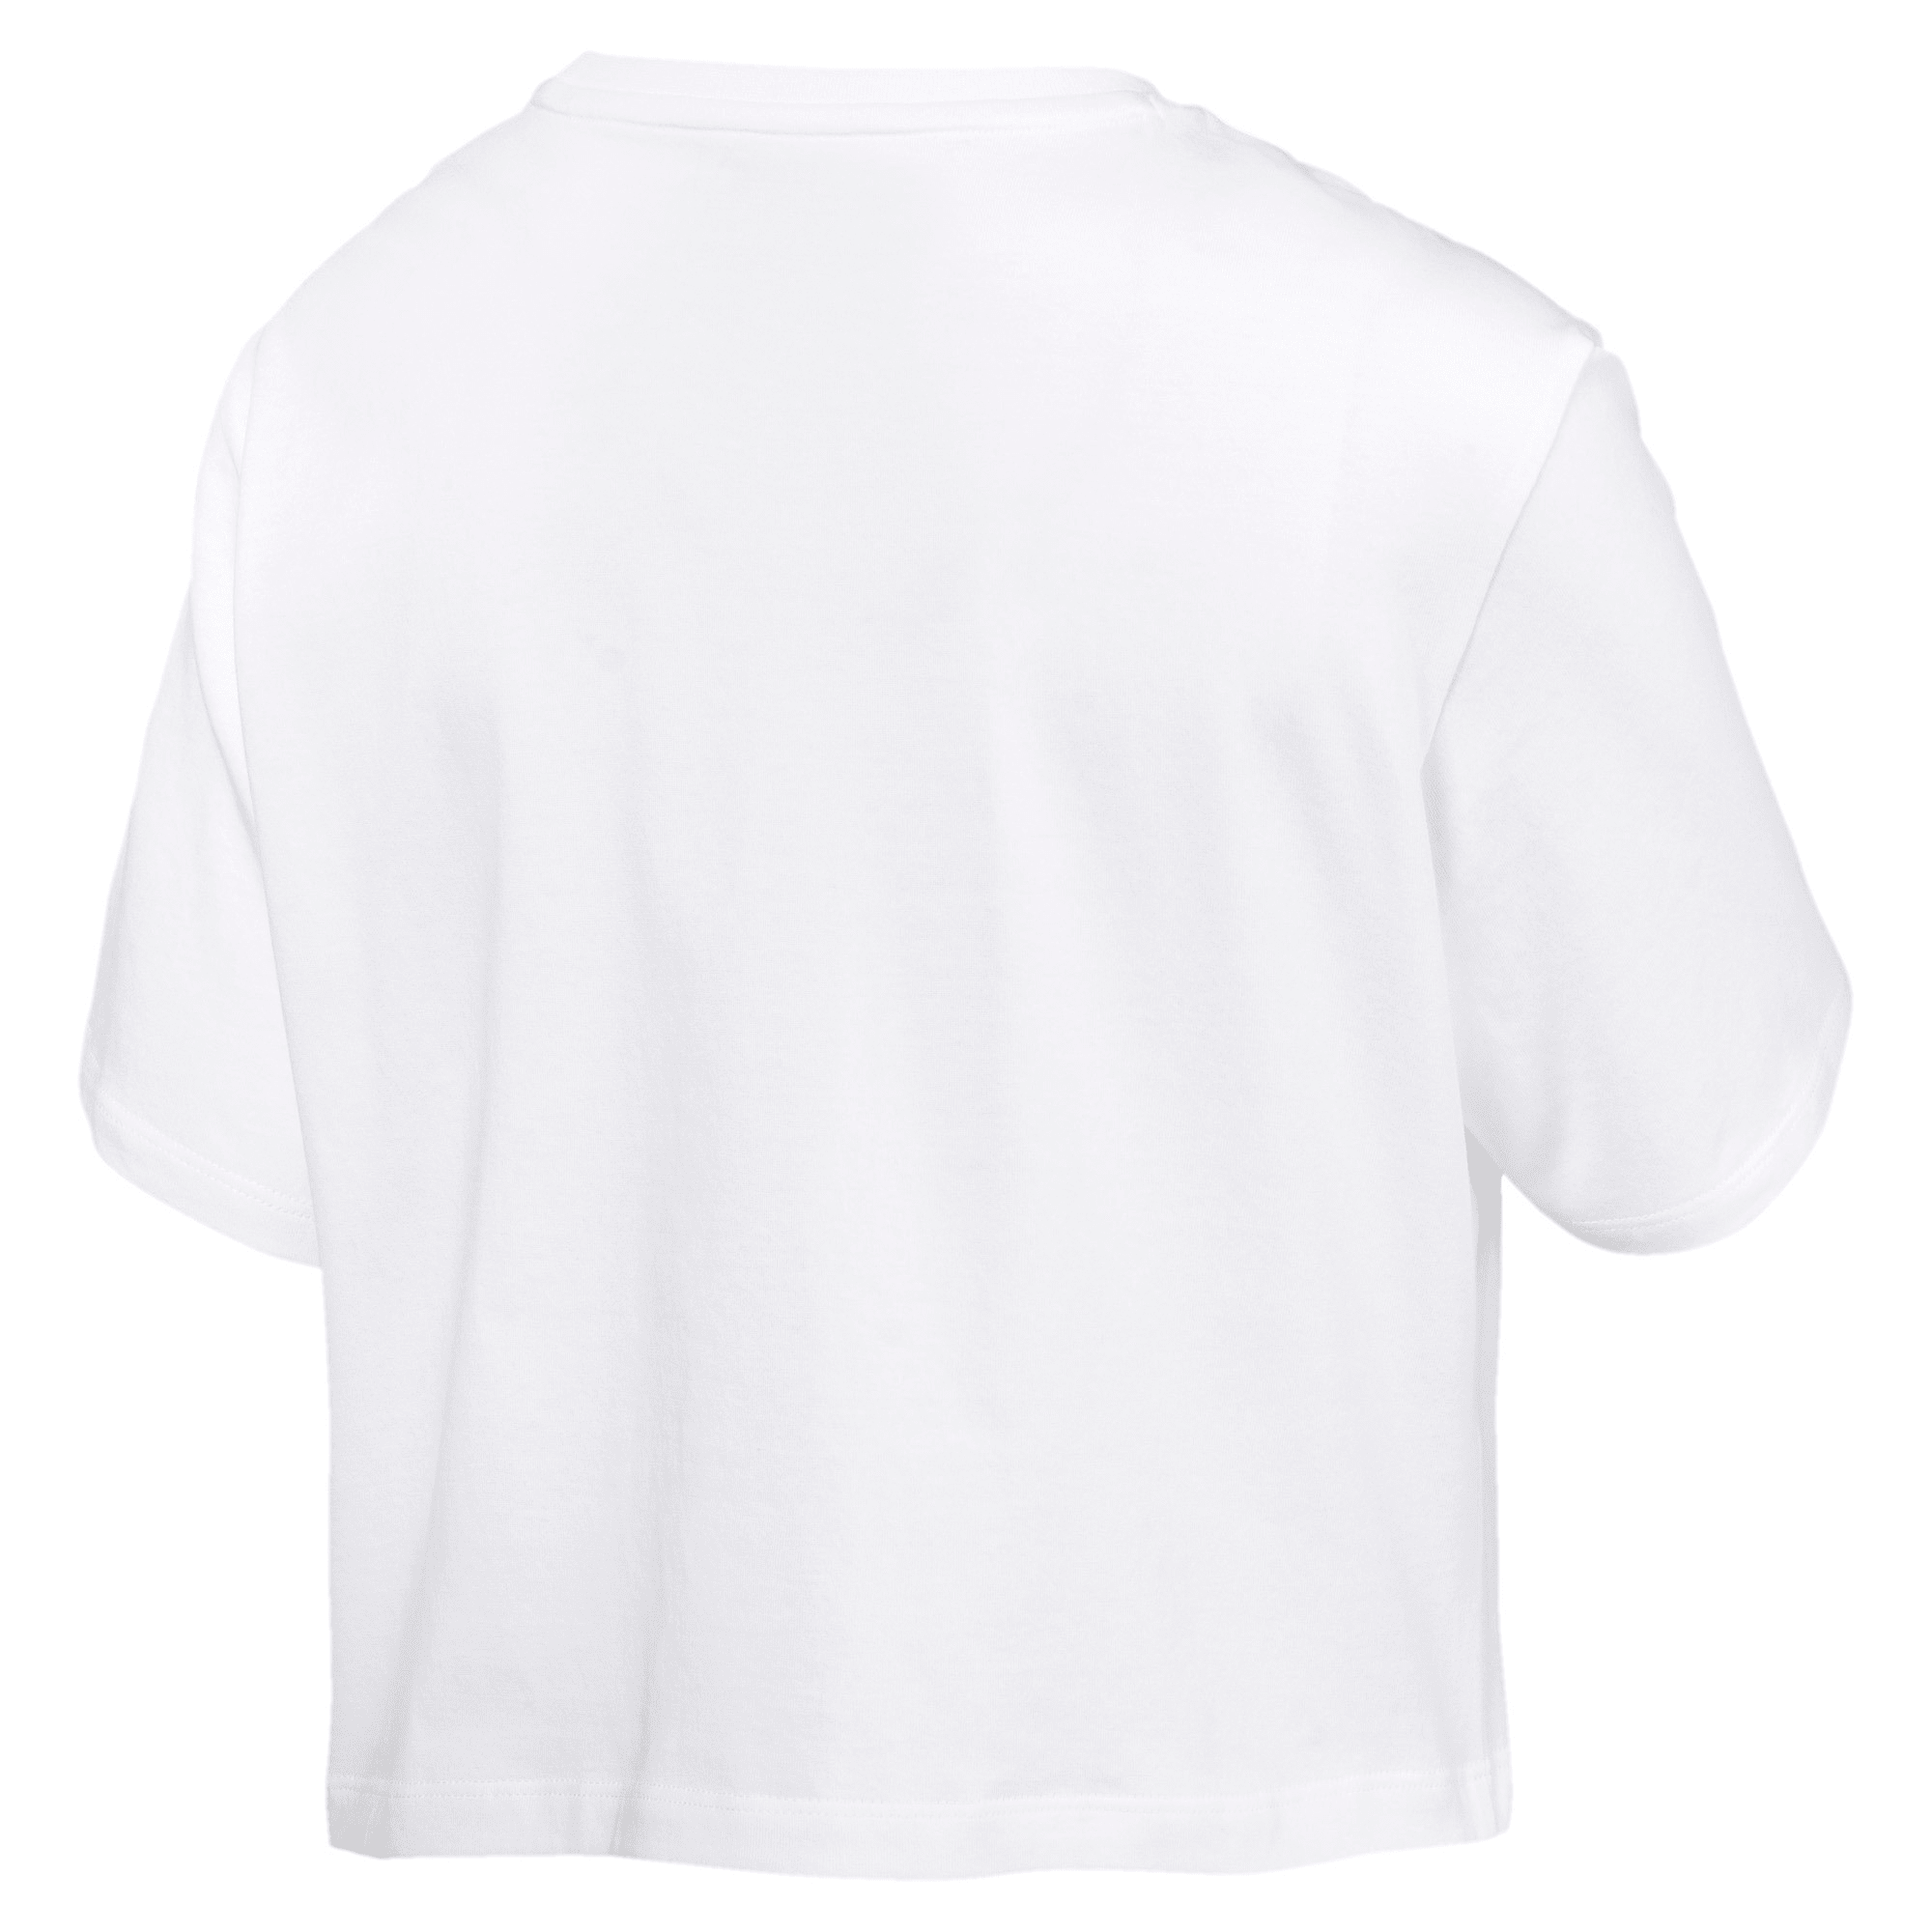 Thumbnail 5 of Essentials+ Cropped Women's Tee, Puma White, medium